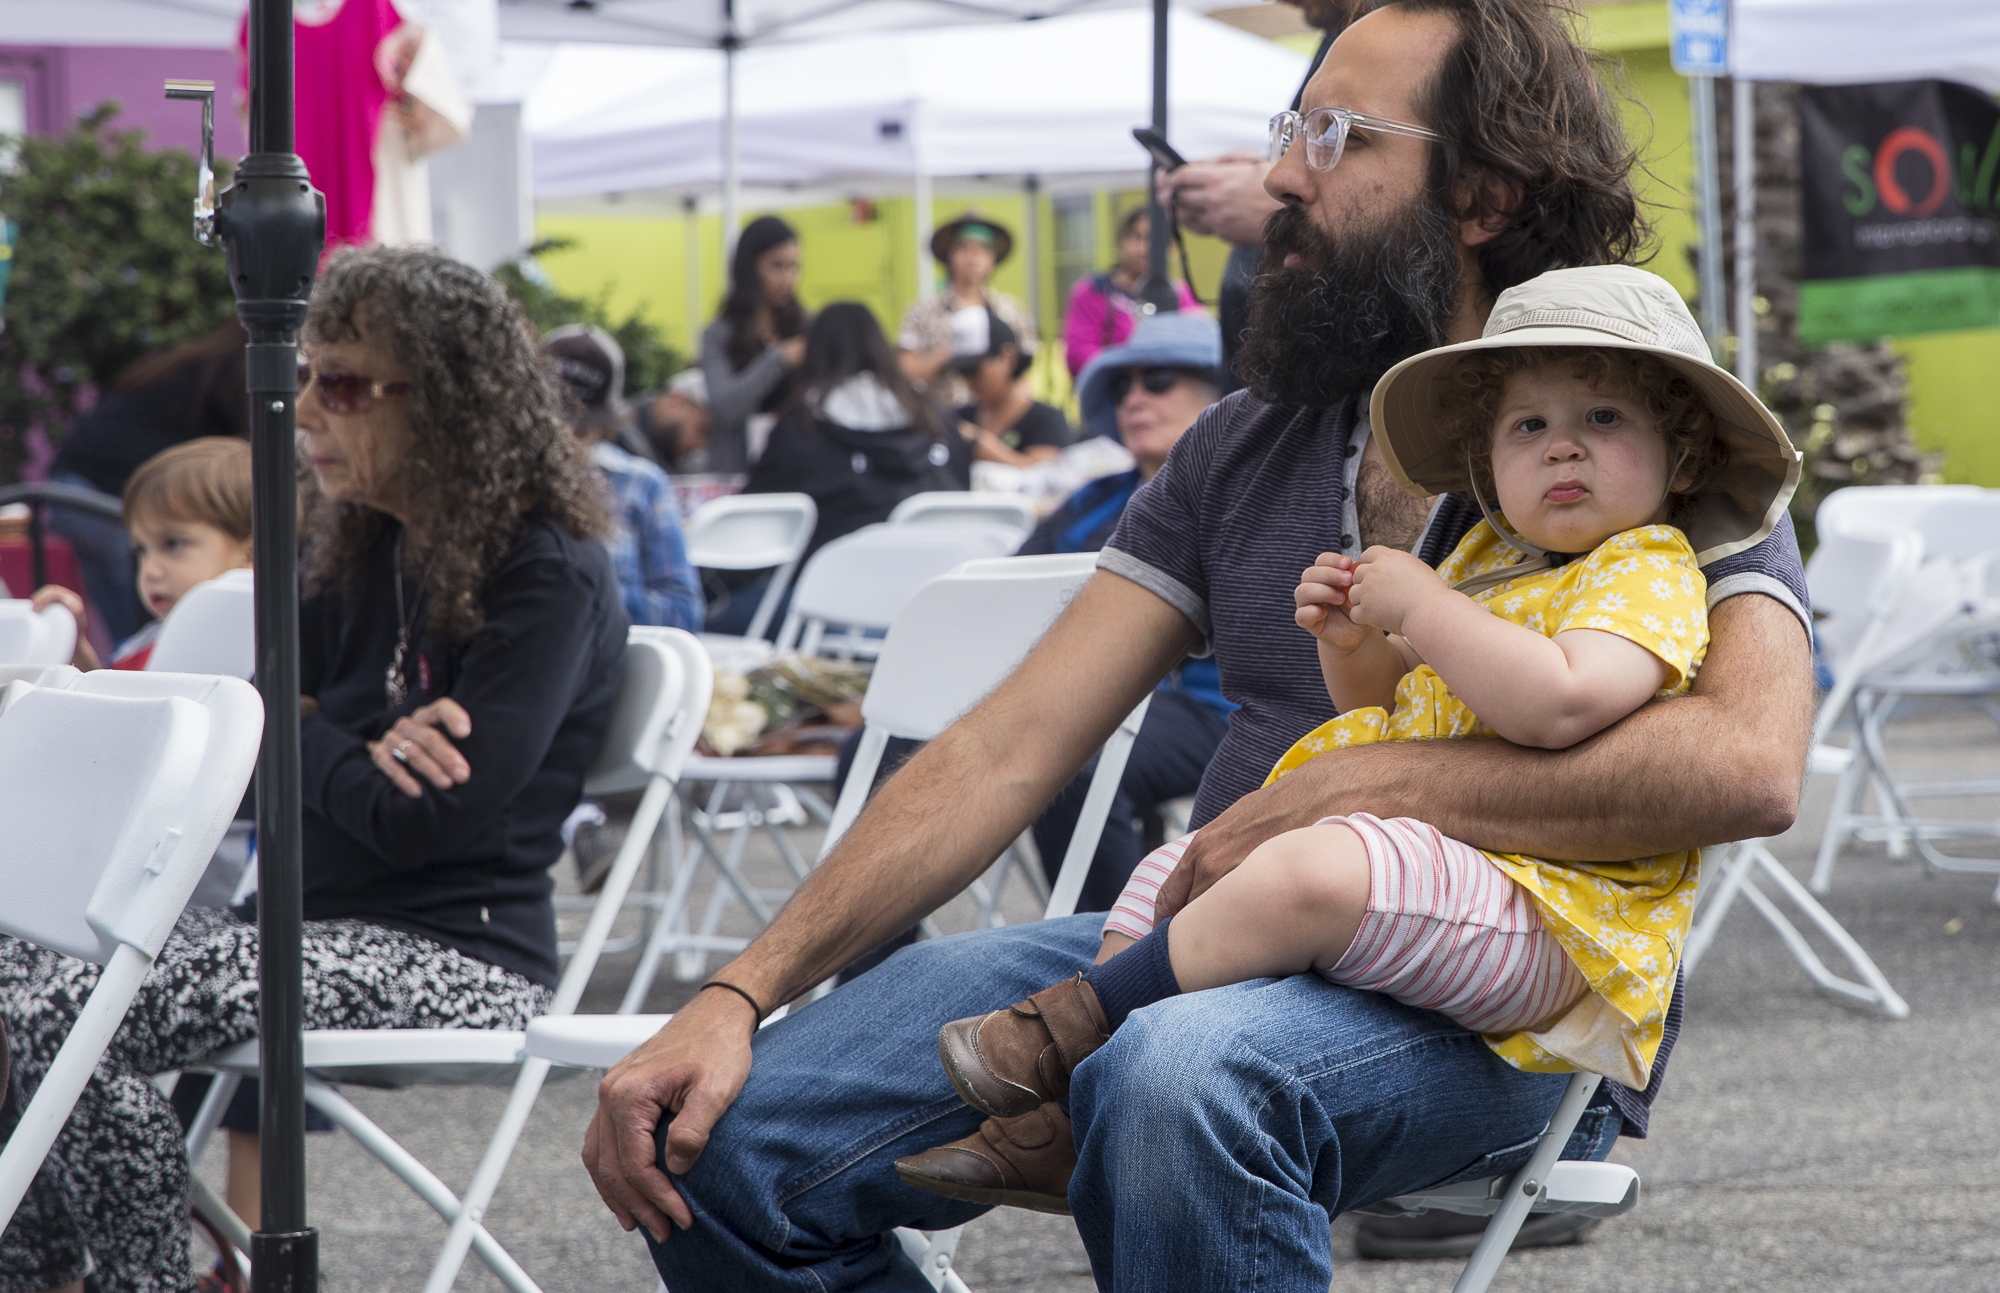 A family watches the various cultural and youth based performances during the Pico Block Party festivities that took place at the 18th street Arts Center in Santa Monica, California on Saturday May 19, 2018. The Pico Block Party is a celebration of artists and cultures of the Pico neighborhood in Santa Monica with the festivities primarily focusing on youth artists and empowering youth voices. (Matthew Martin/Corsair Photo)